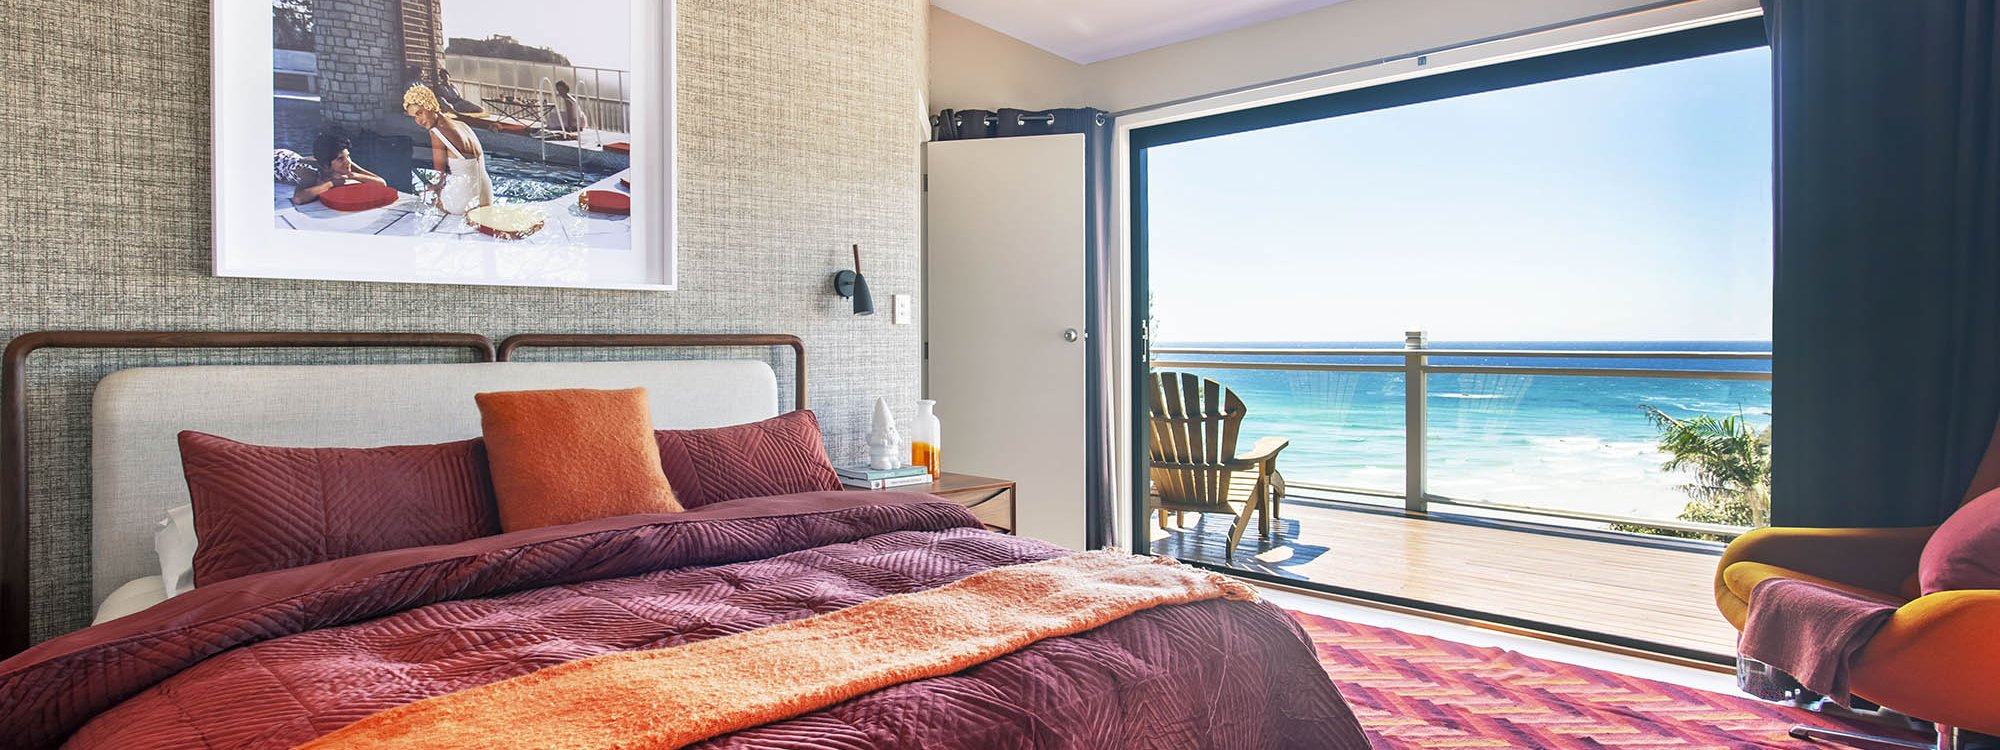 The Palms at Byron - Byron Bay - Bedroom 2e